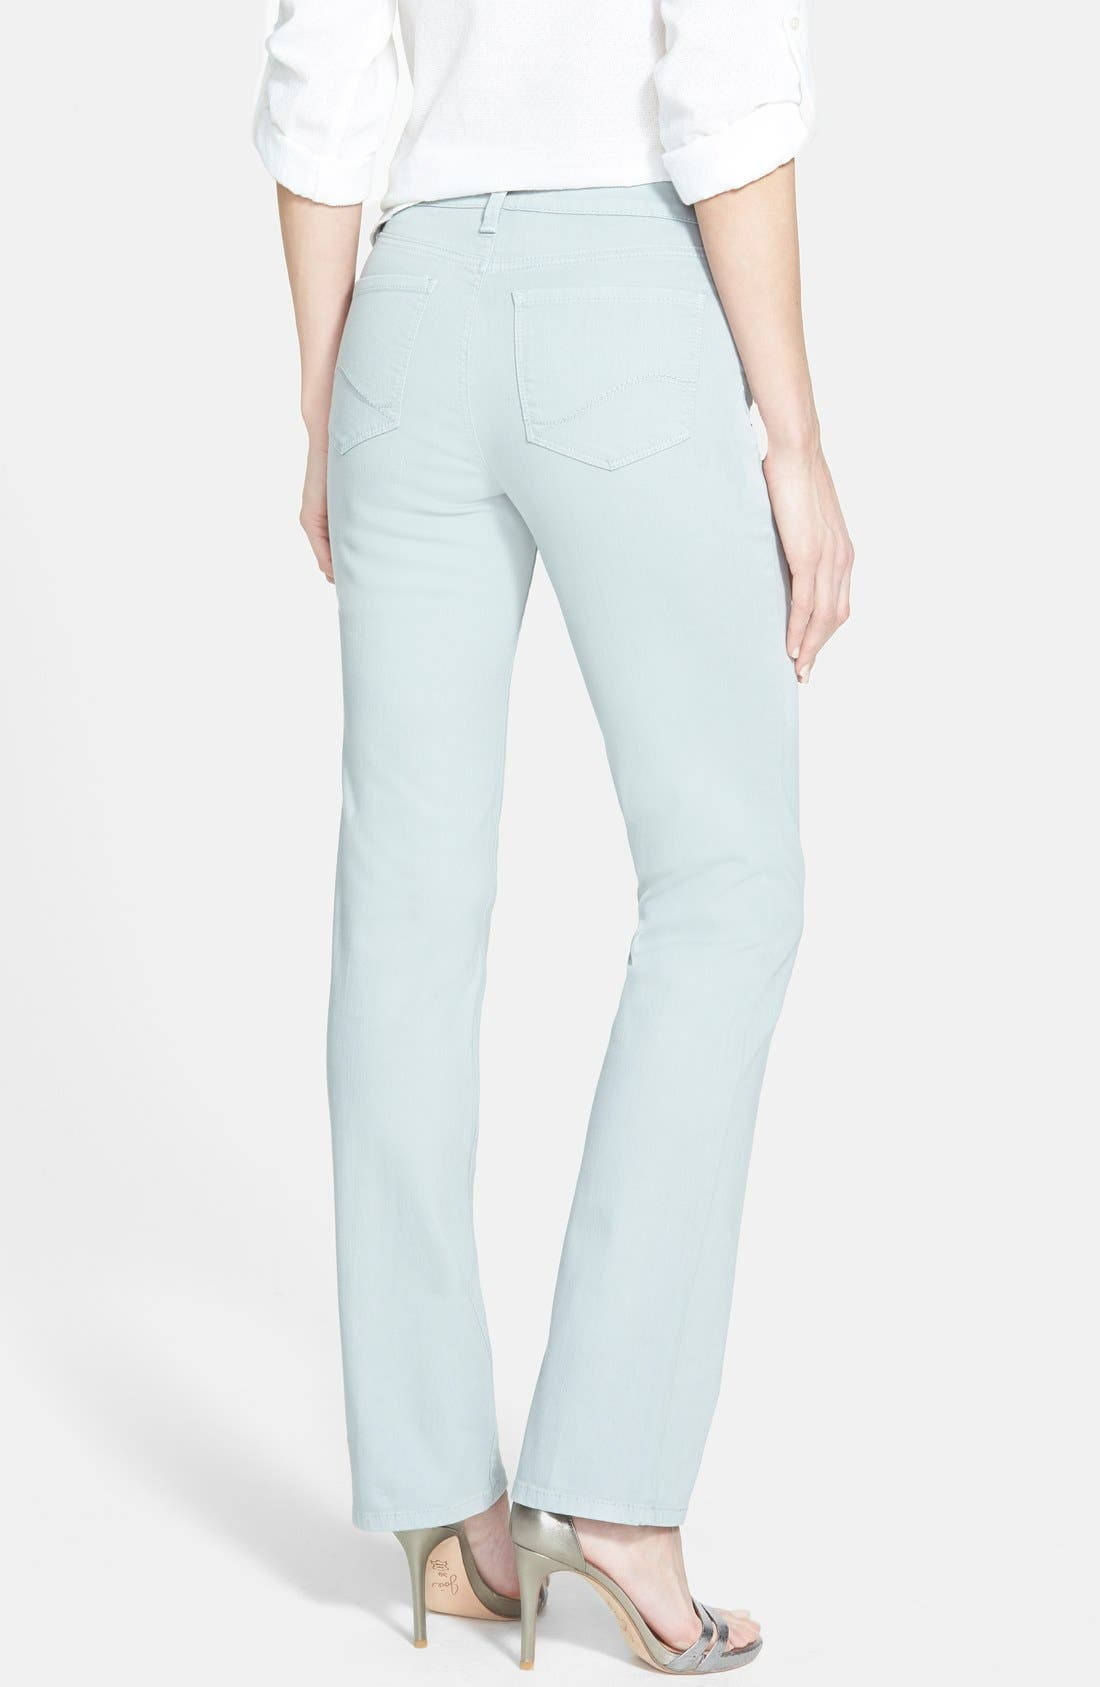 'Marilyn' Stretch Straight Leg Jeans,                             Alternate thumbnail 3, color,                             020